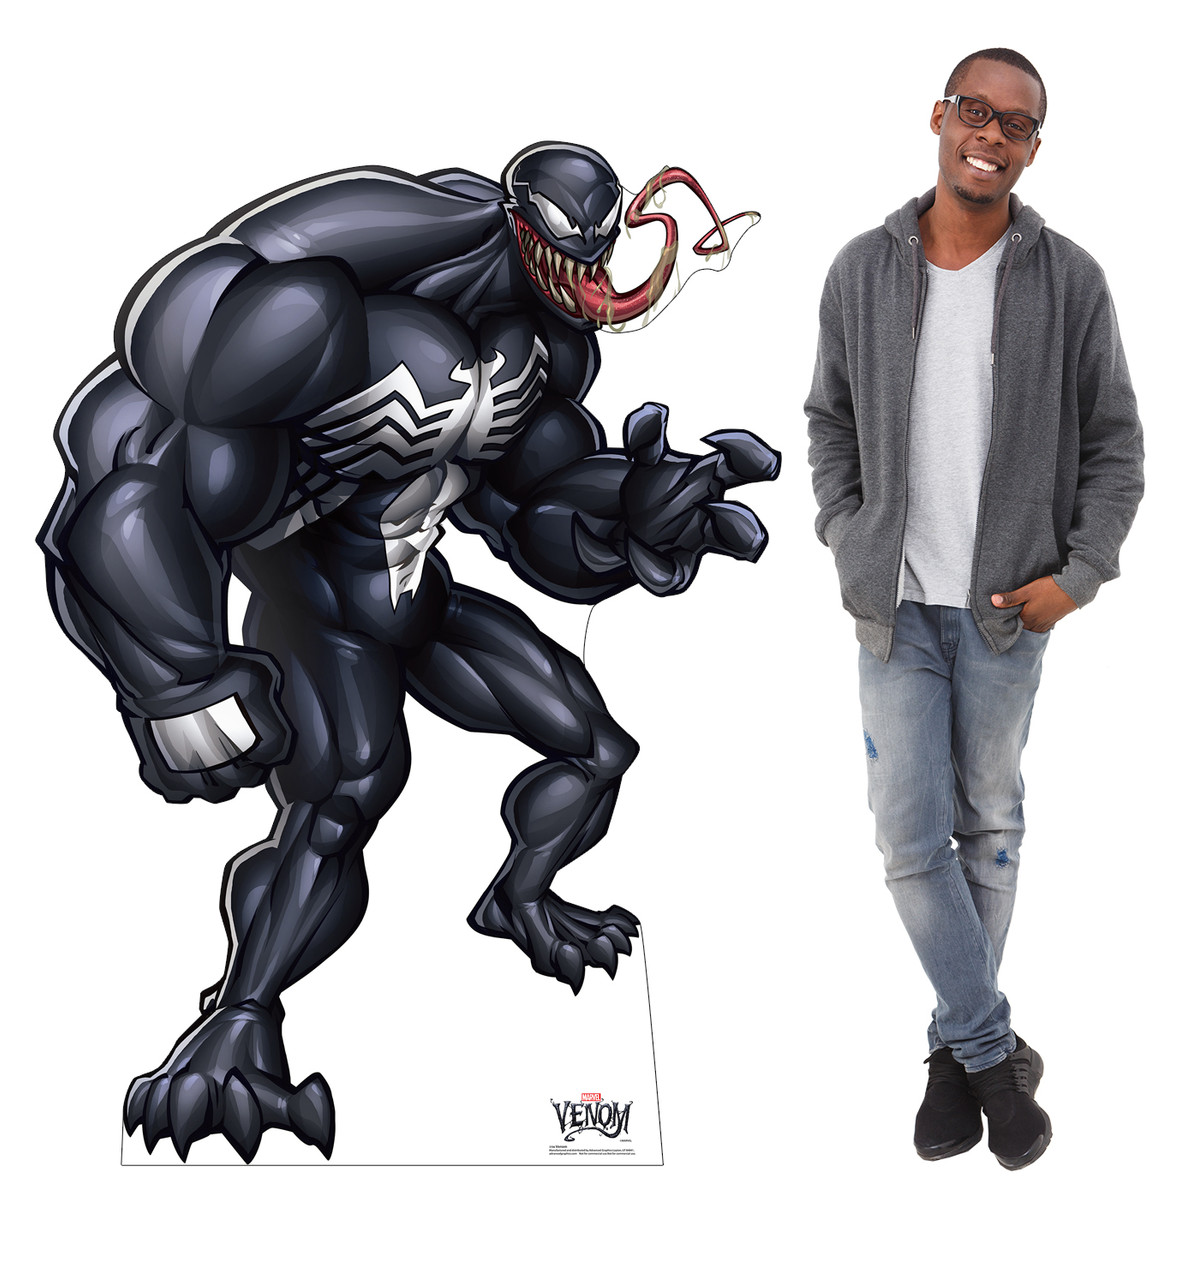 Life-size cardboard standee of Venom from Marvel Classics with model.